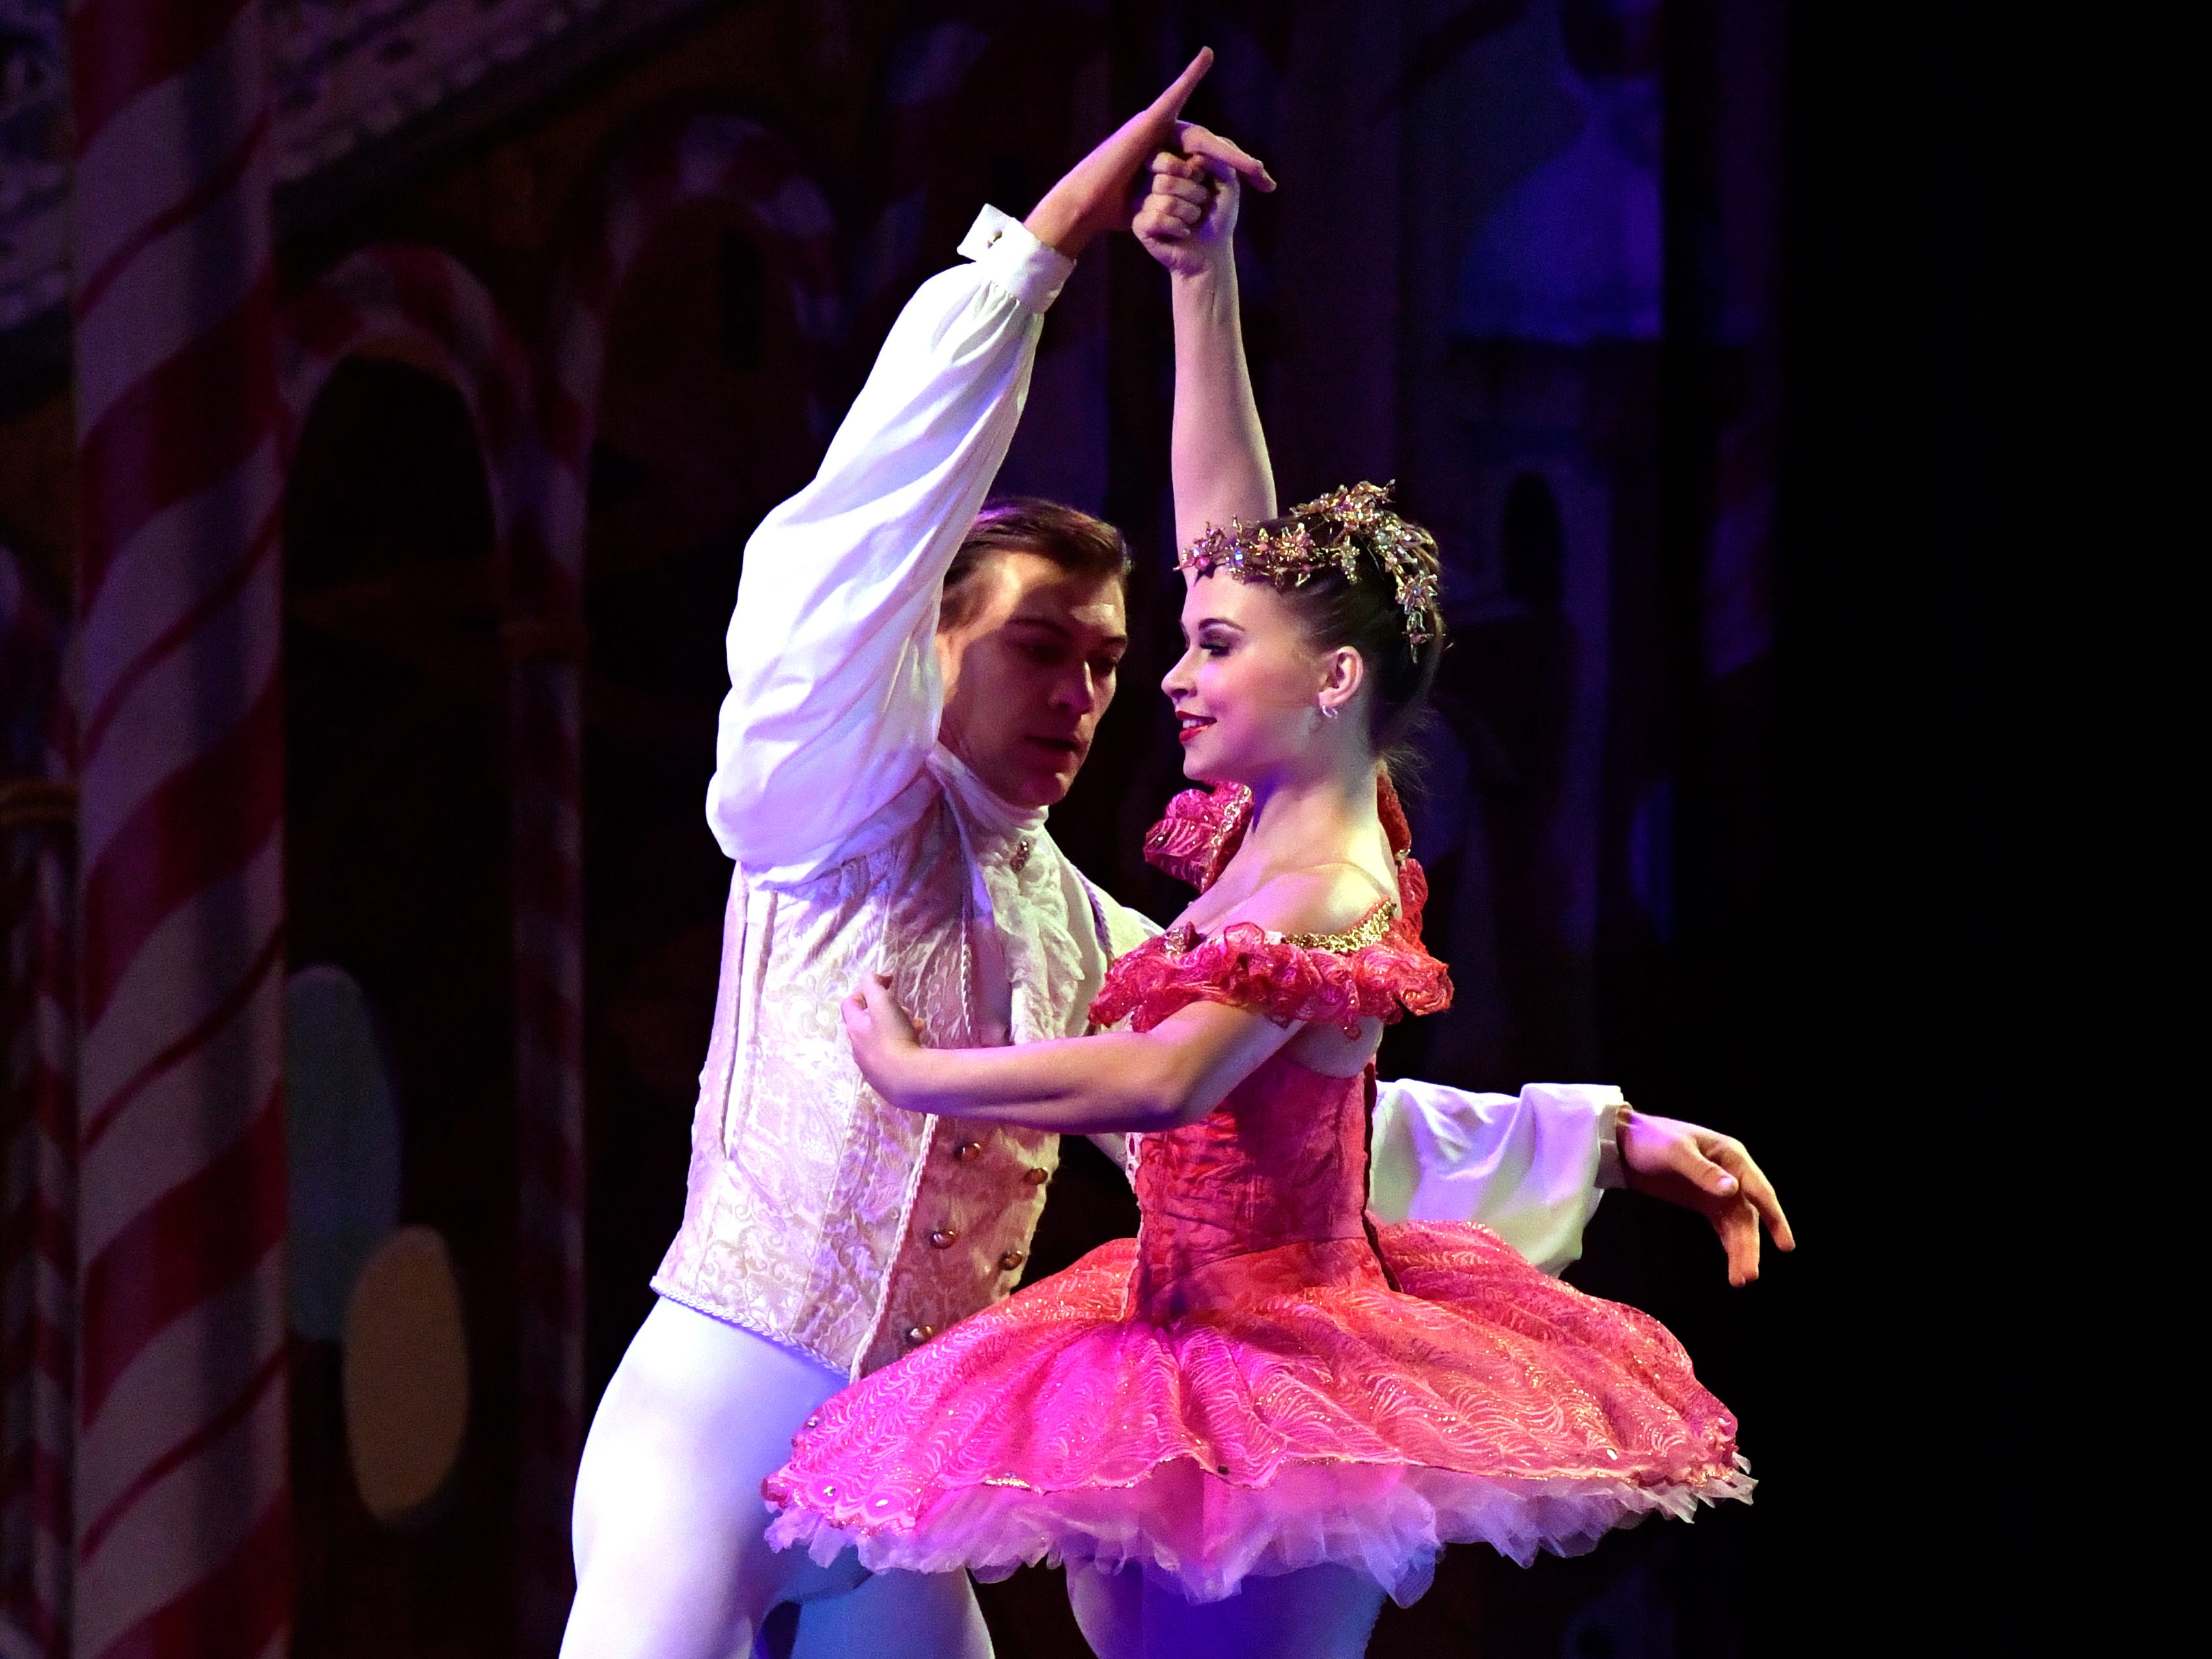 Elizabeth Fillingim as the Sugar Plum Fairy is twirled by Shea Johnson dancing as the Cavalier in the Land of the Sweets scene during Friday's performance of The Nutcracker for schoolchildren Nov. 16, 2018. This was the 31st year for the Abilene Ballet Theatre production, held at the Paramount Theatre.